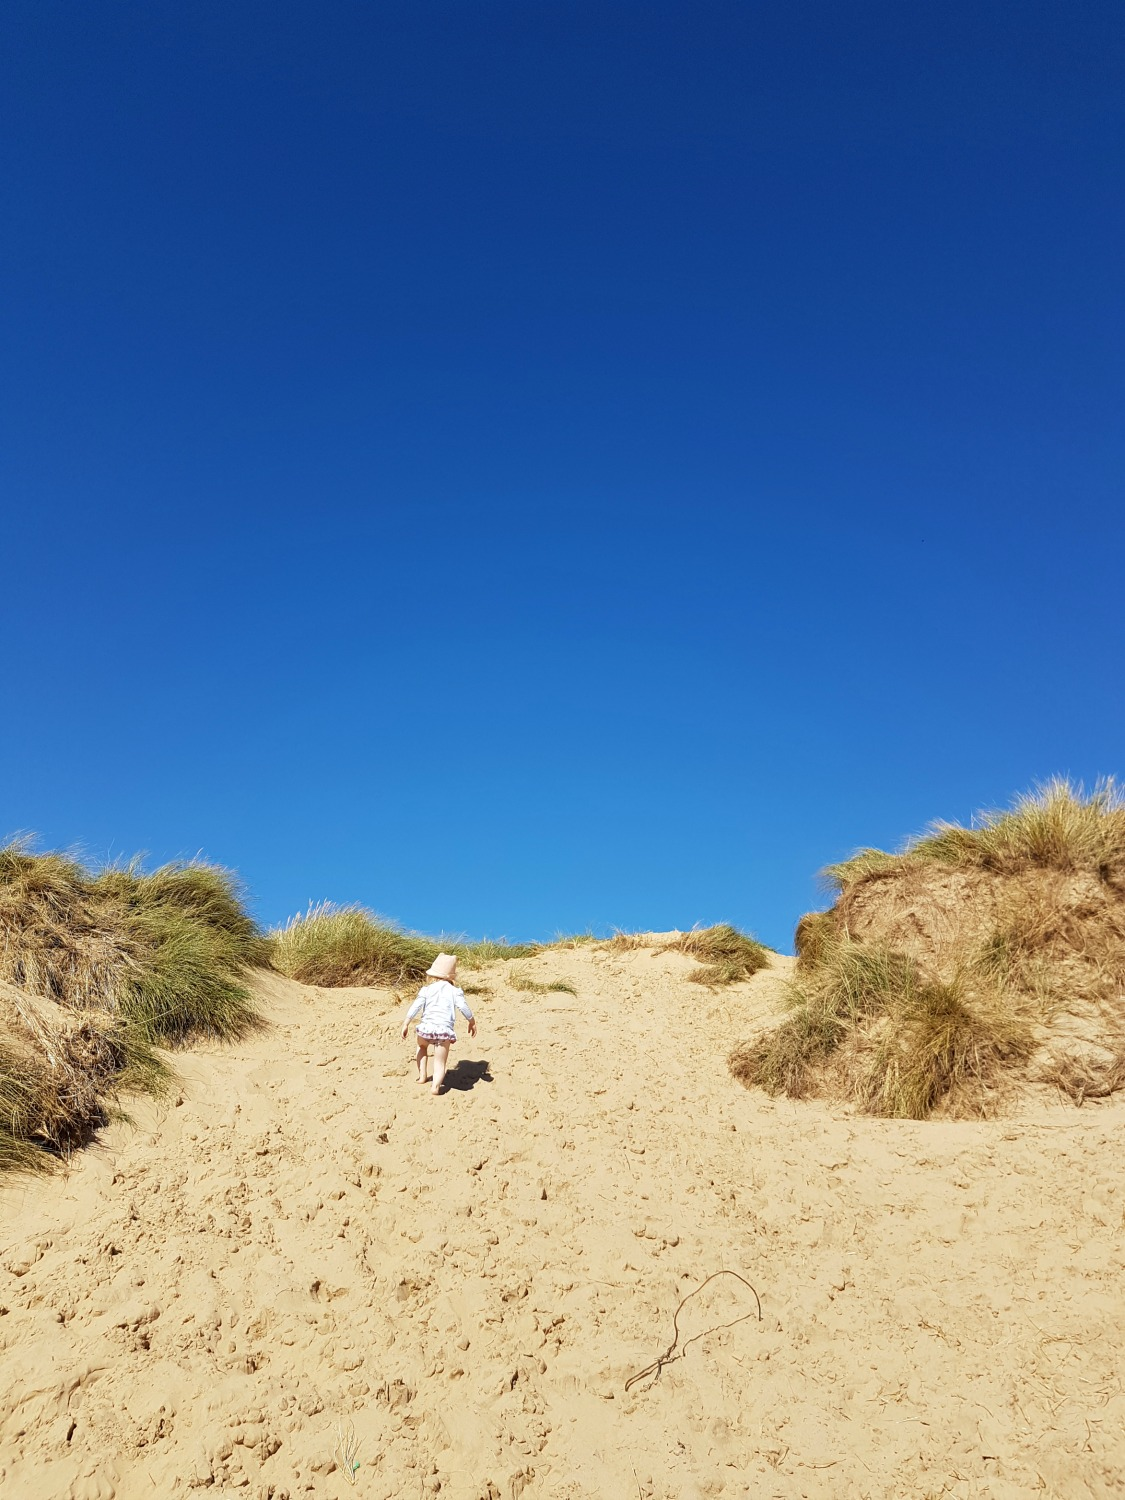 Girl on the dunes at Camber Sands beach in East Sussex - spending a weekend in East Sussex with my daughter before the start of school, to explore the history and coastline